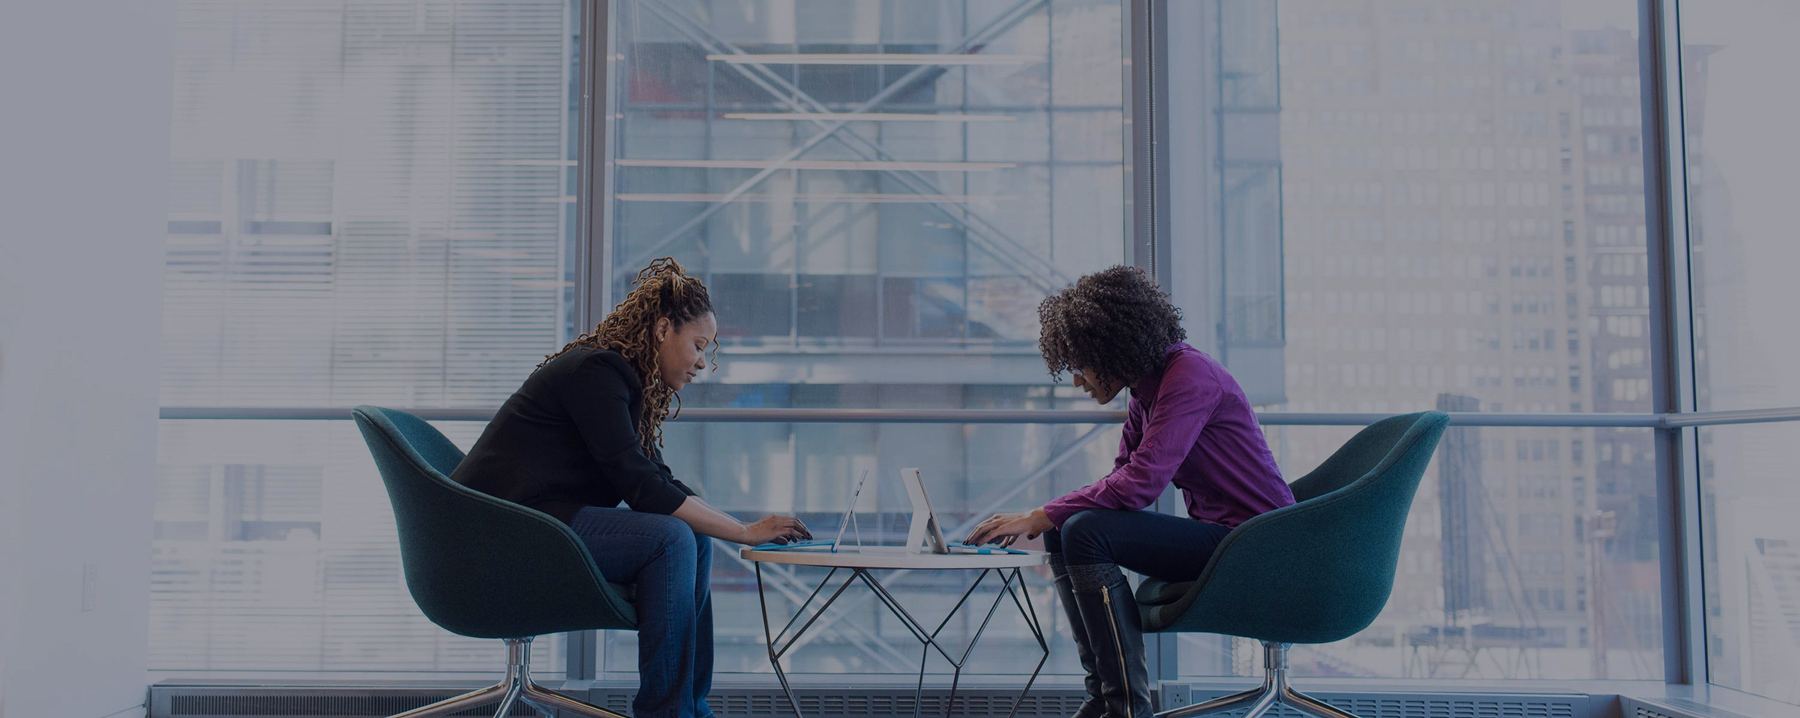 Two women facing each other working on laptops in front of large glass window.